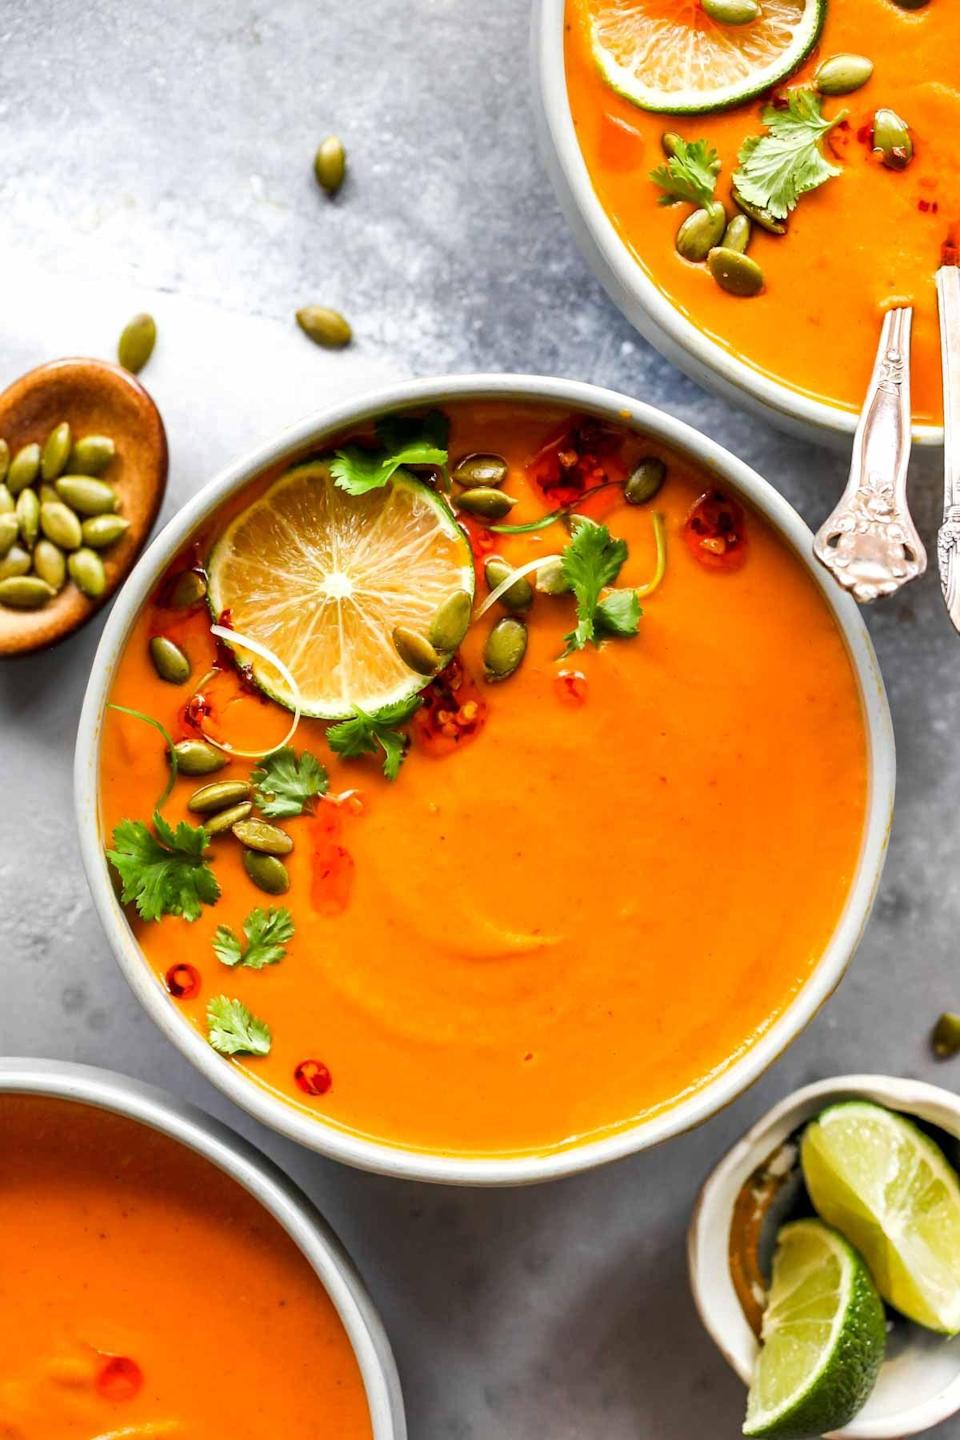 """<p>If you're hungry, whip up this easy Thai soup. It takes less than 30 minutes to make, and is vegan and gluten-free. Top it off with your favorite seeds and a dash of cilantro. </p> <p><strong>Get the recipe</strong>: <a href=""""https://dishingouthealth.com/thai-pumpkin-soup/"""" class=""""link rapid-noclick-resp"""" rel=""""nofollow noopener"""" target=""""_blank"""" data-ylk=""""slk:Thai pumpkin soup"""">Thai pumpkin soup</a></p>"""